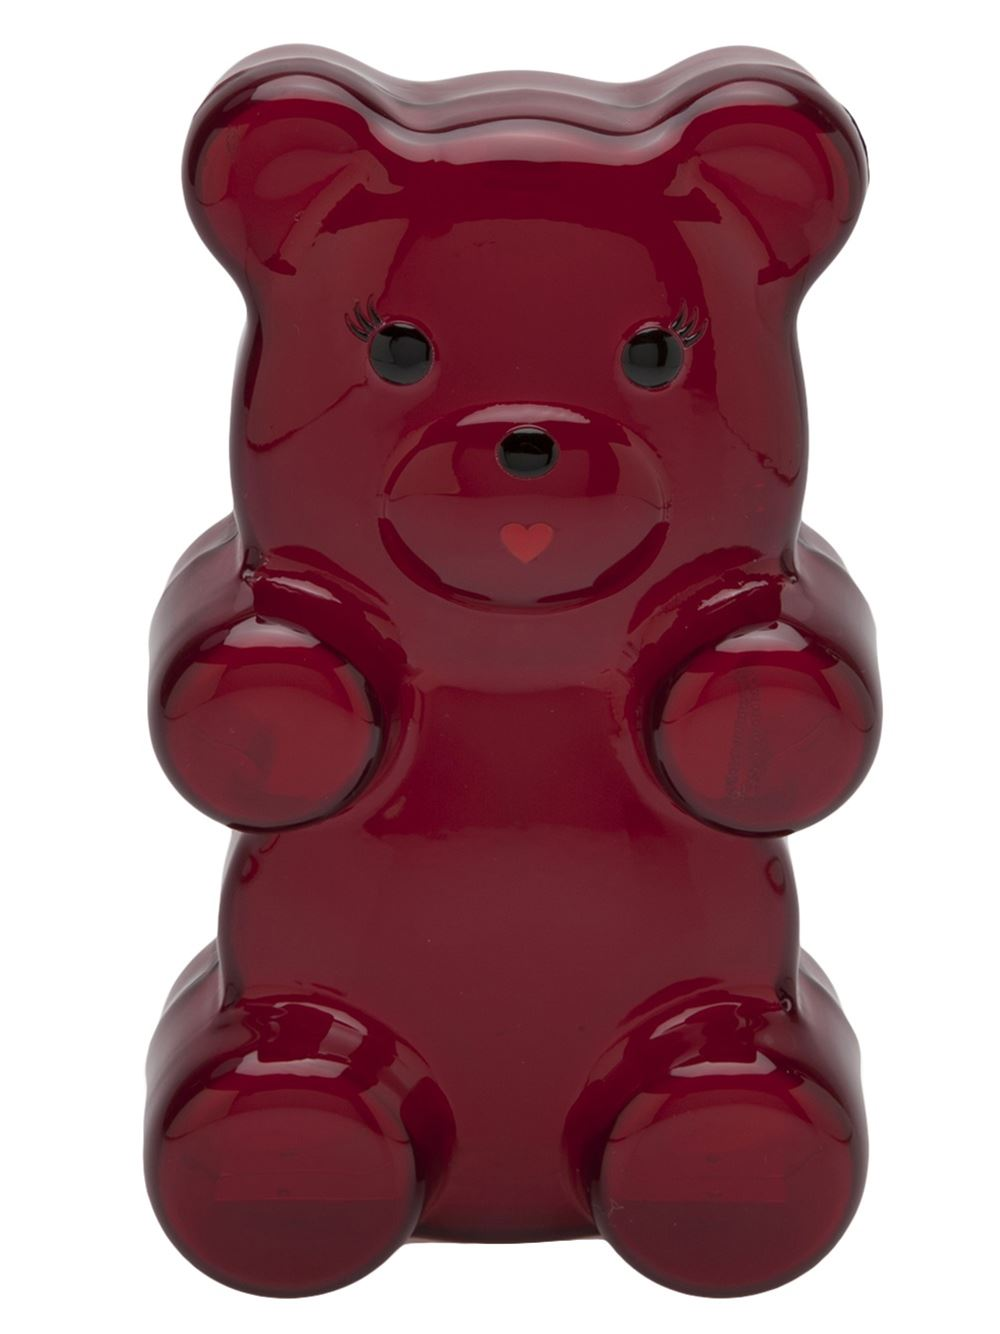 Red Gummi Bear clutch from Charlotte Olympia